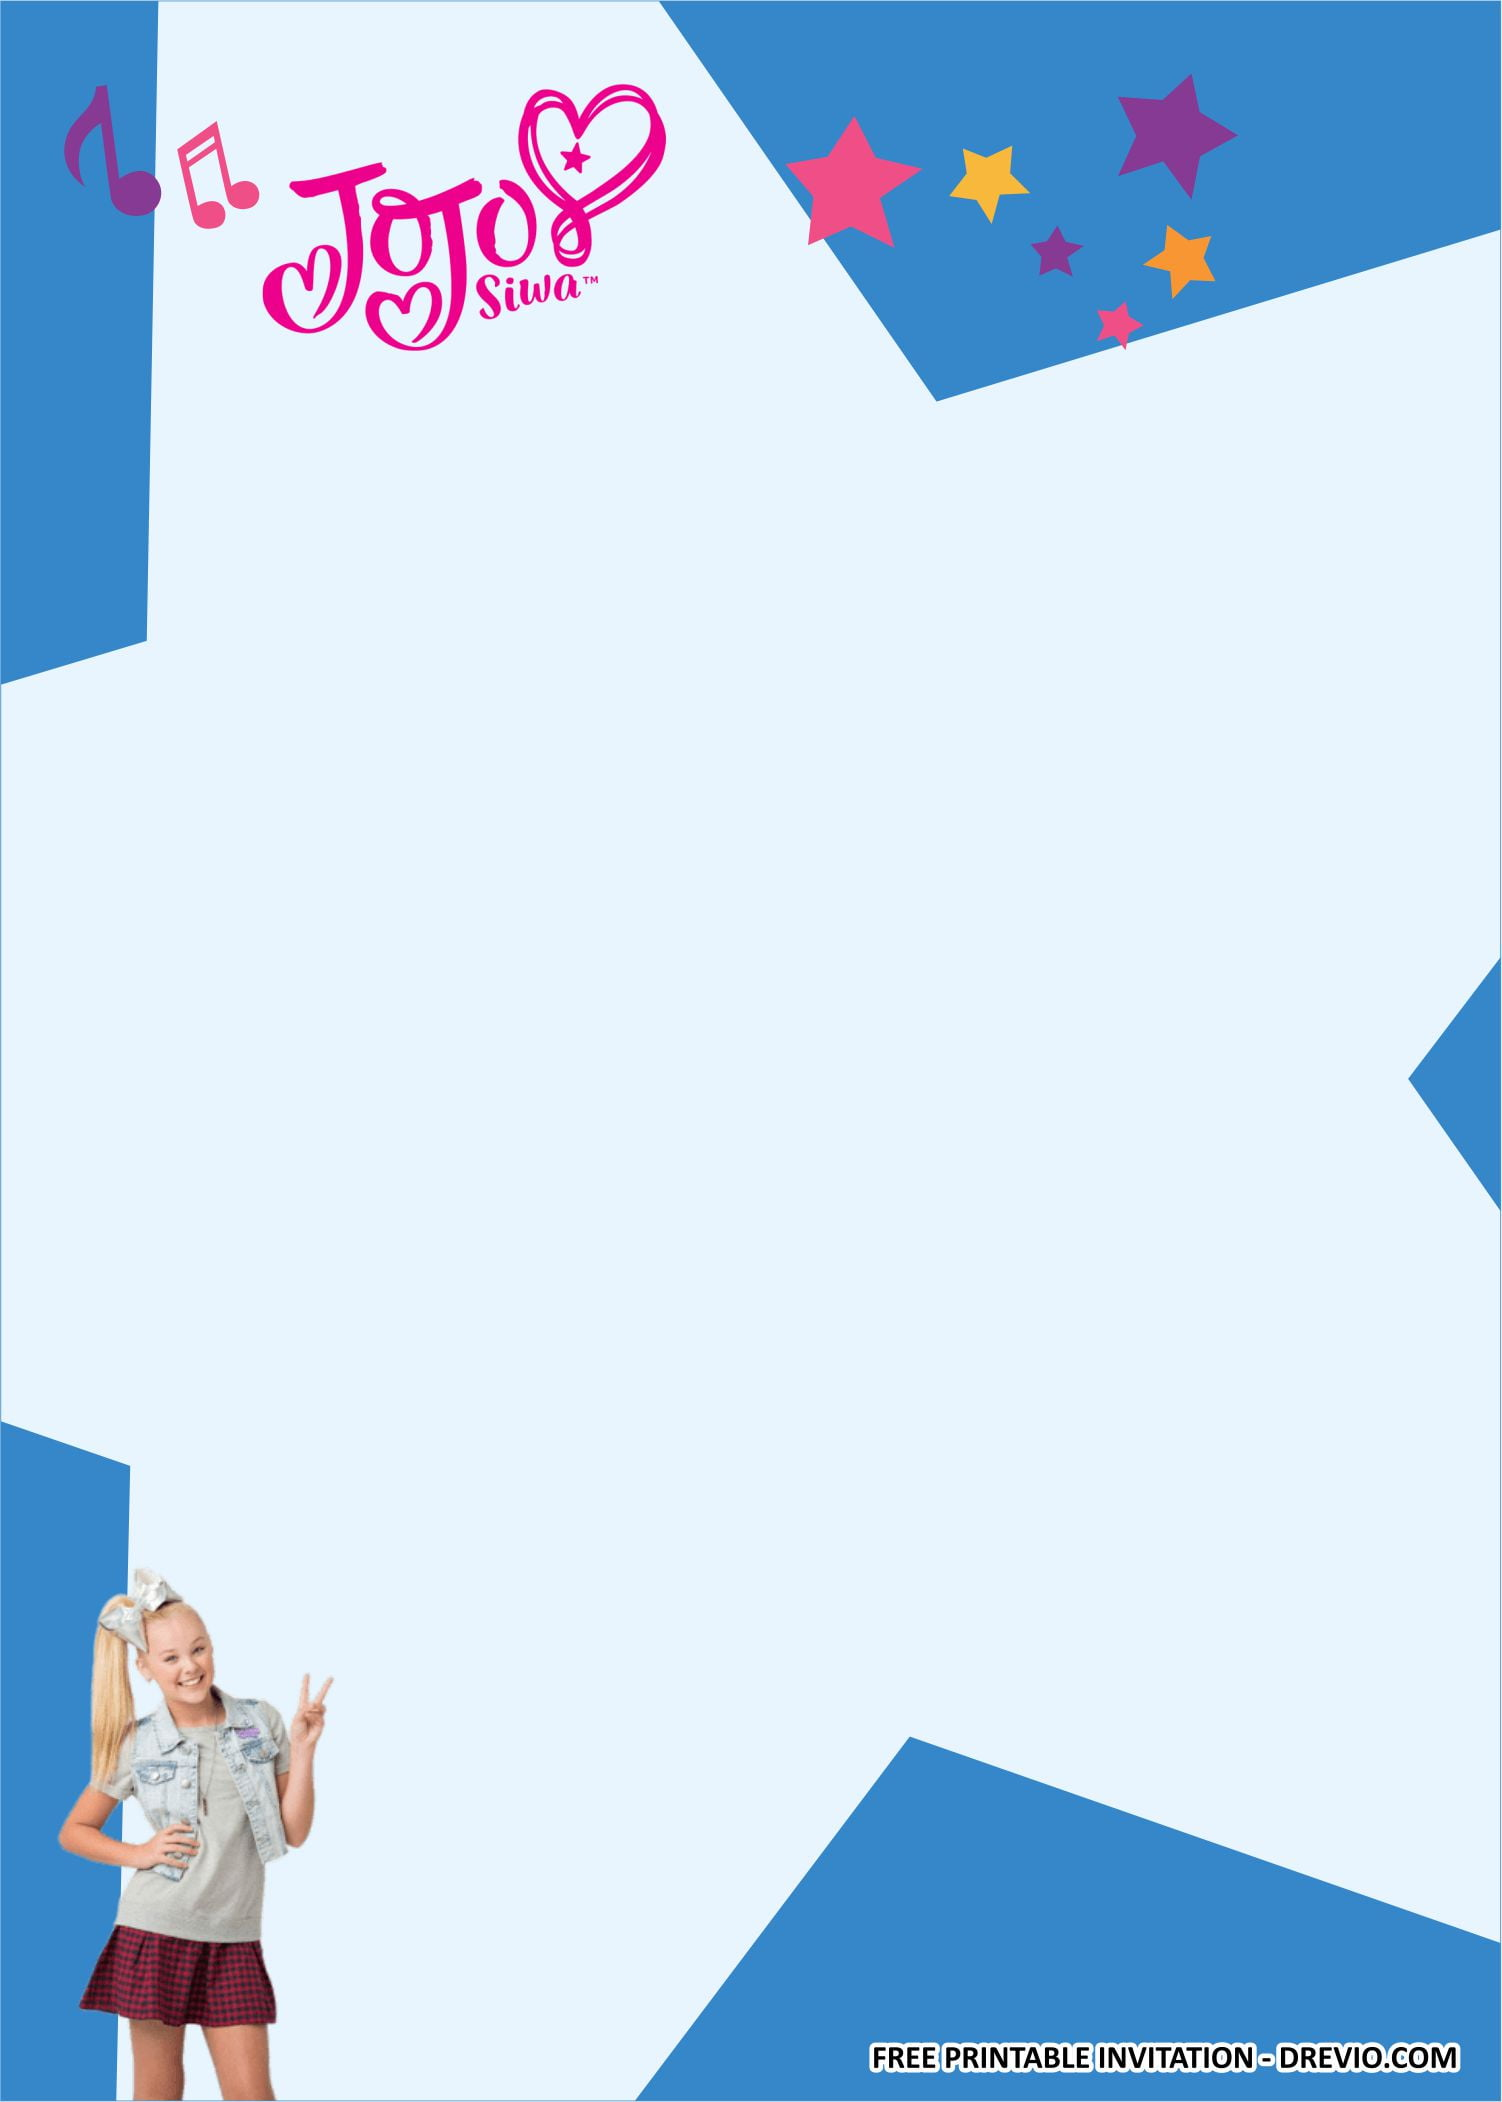 jojo siwa birthday party kits templates